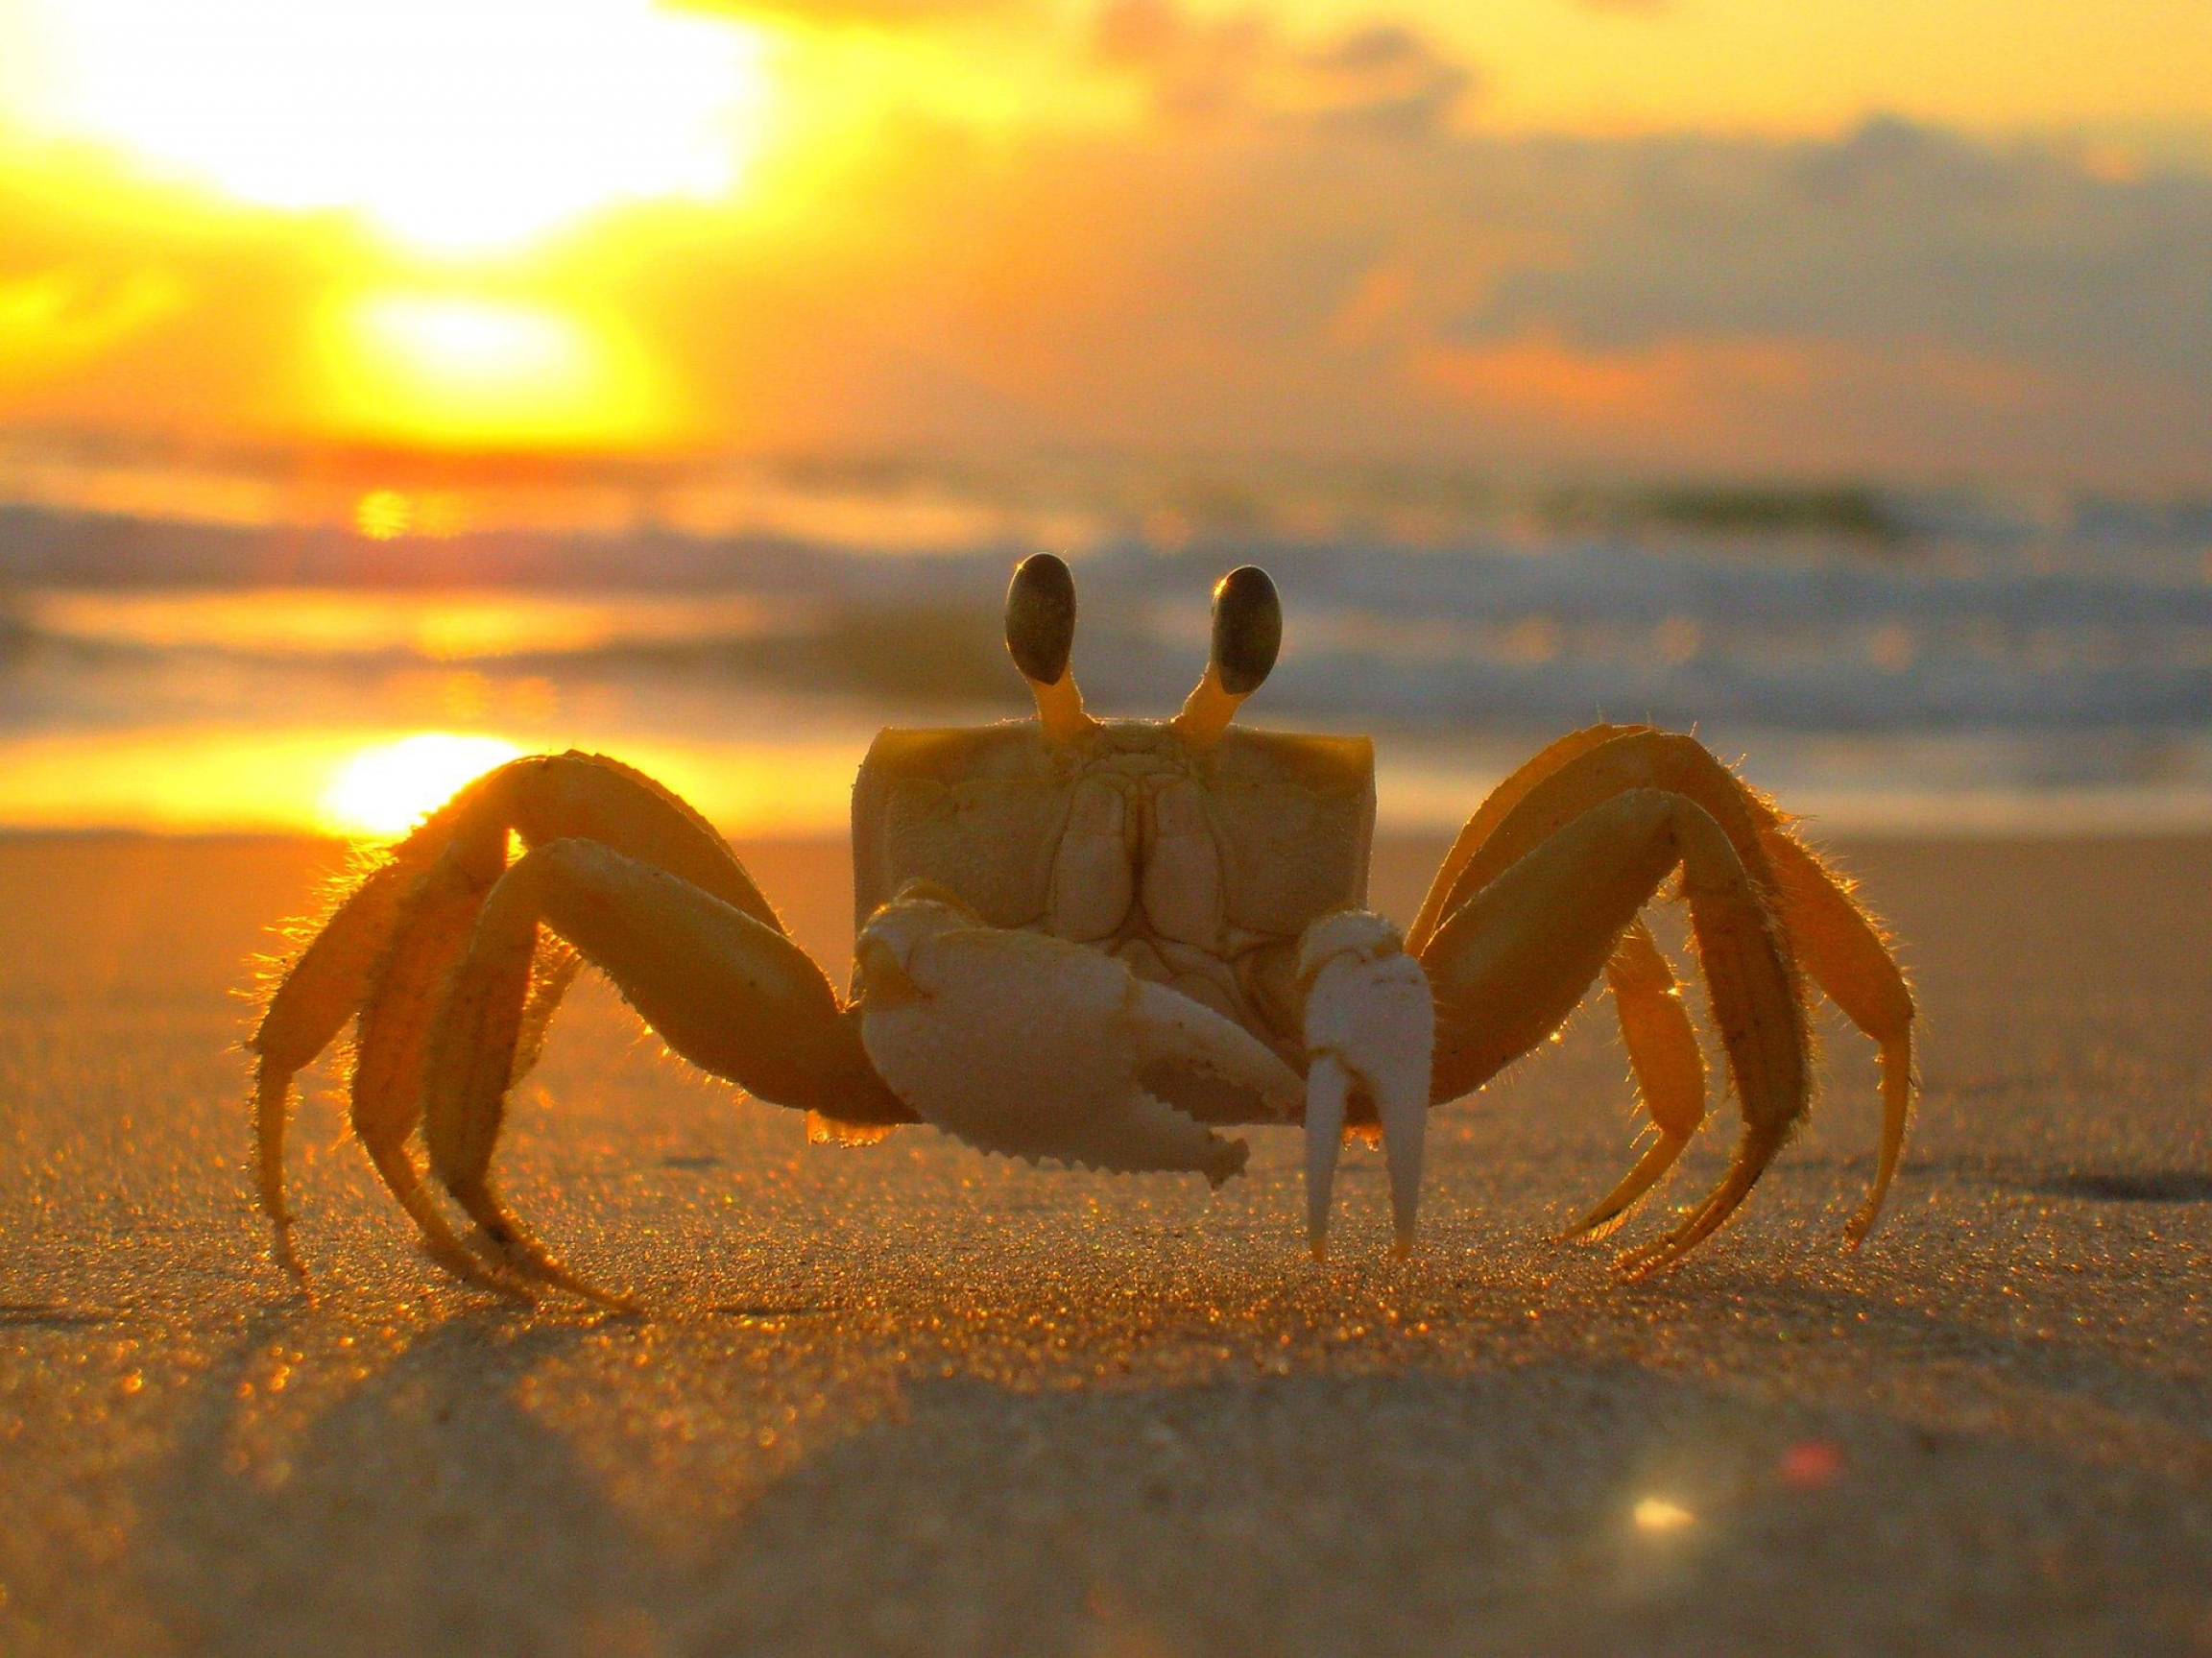 A crab during sunset.